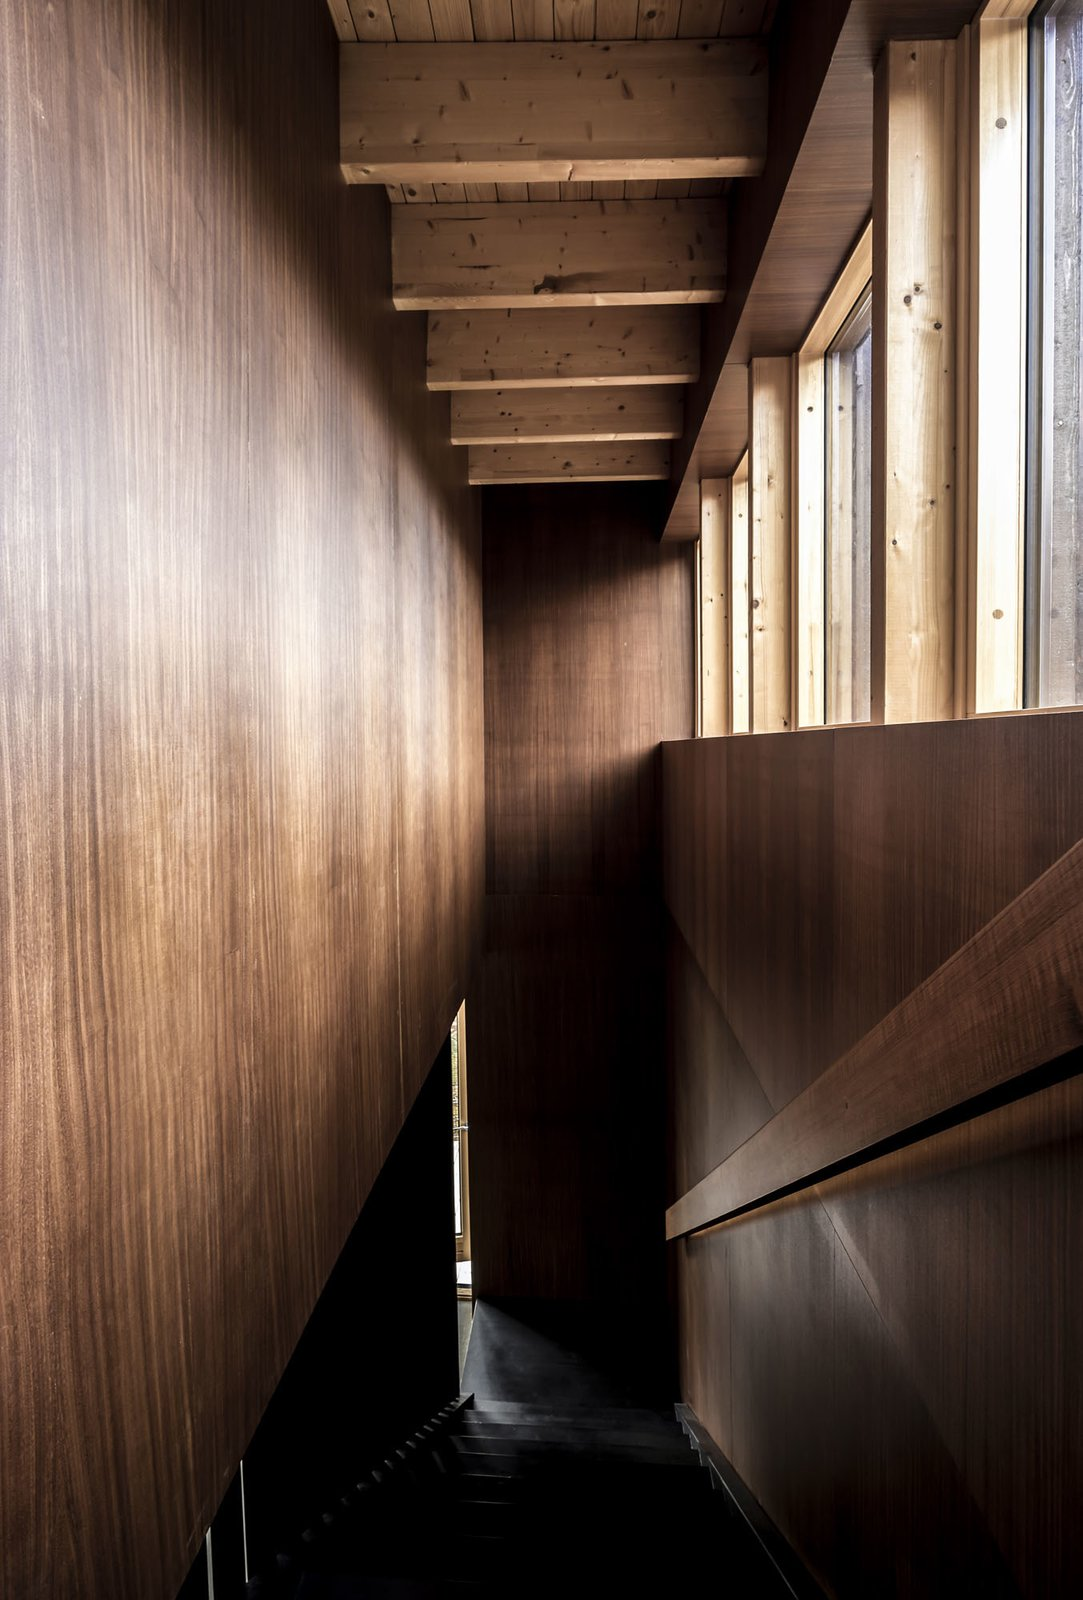 Staircase, Wood Tread, and Wood Railing  Woodland house